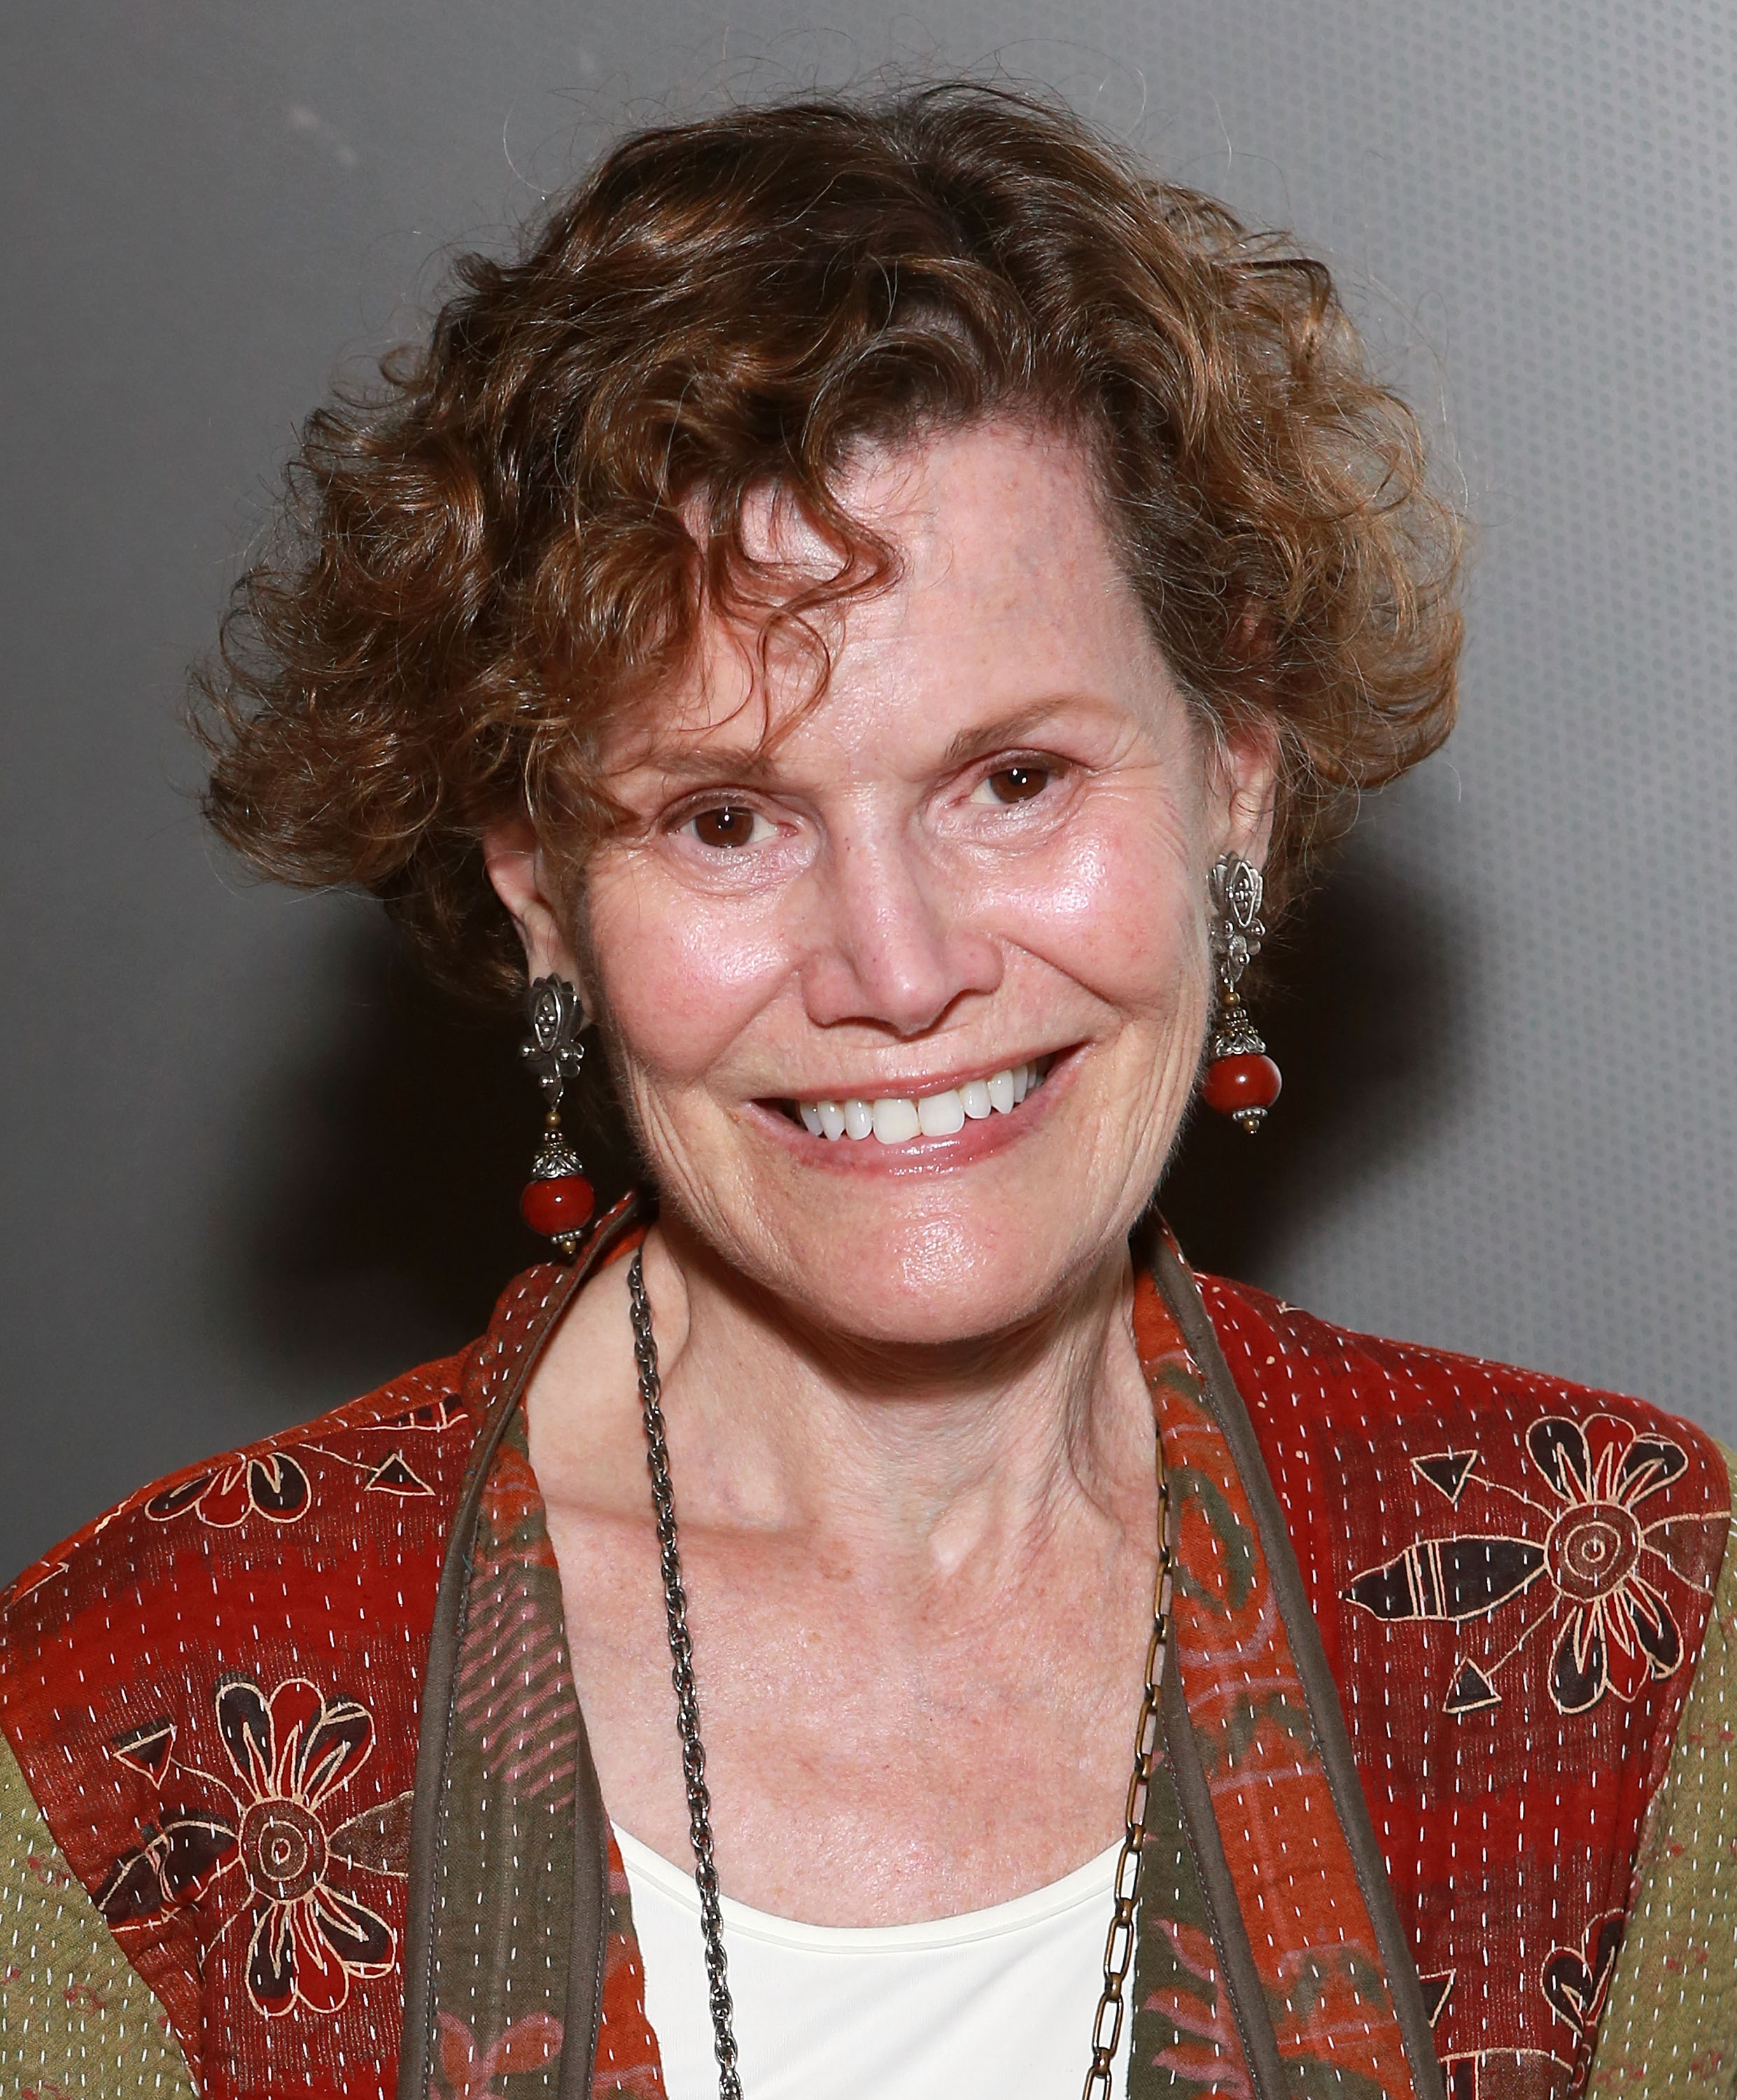 Author and producer Judy Blume attends  Tiger Eyes  New York Premiere at AMC Empire on June 7, 2013 in New York City.